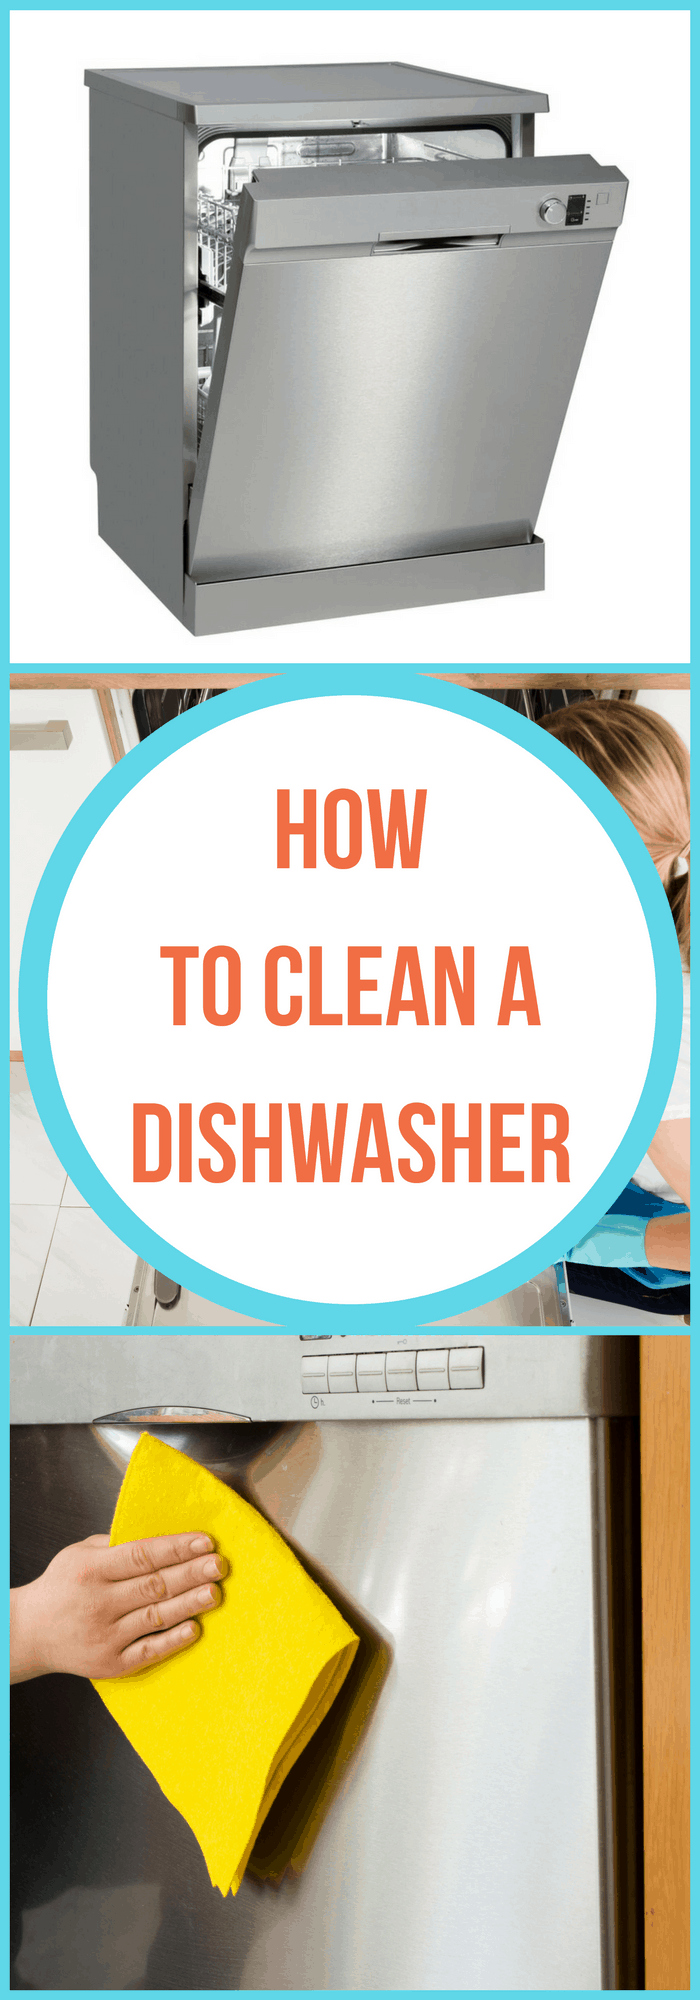 How To Clean A Dishwasher The Organized Mom